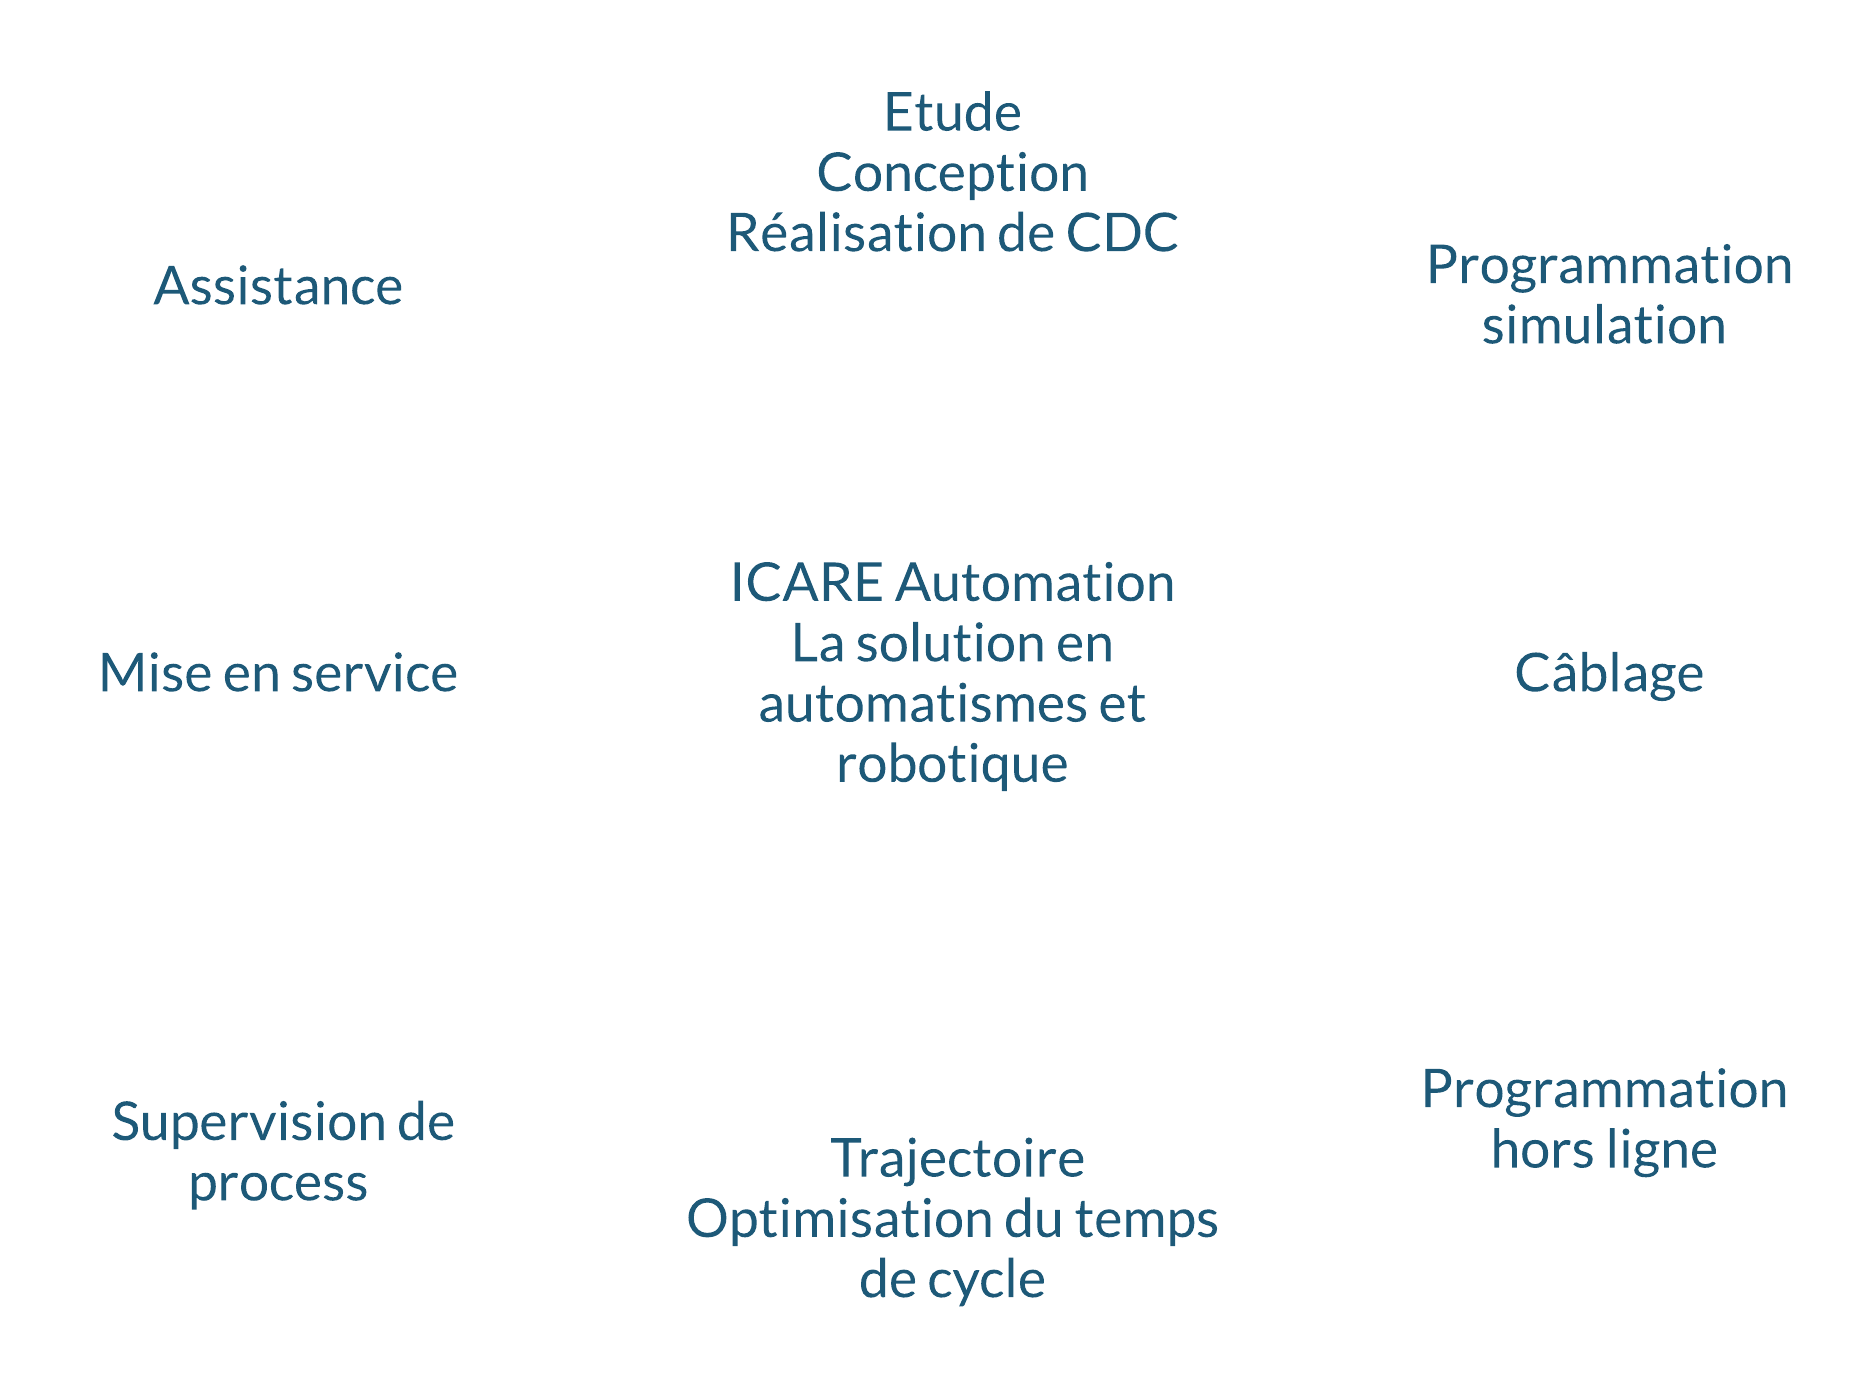 La Solution en automatismes et robotique